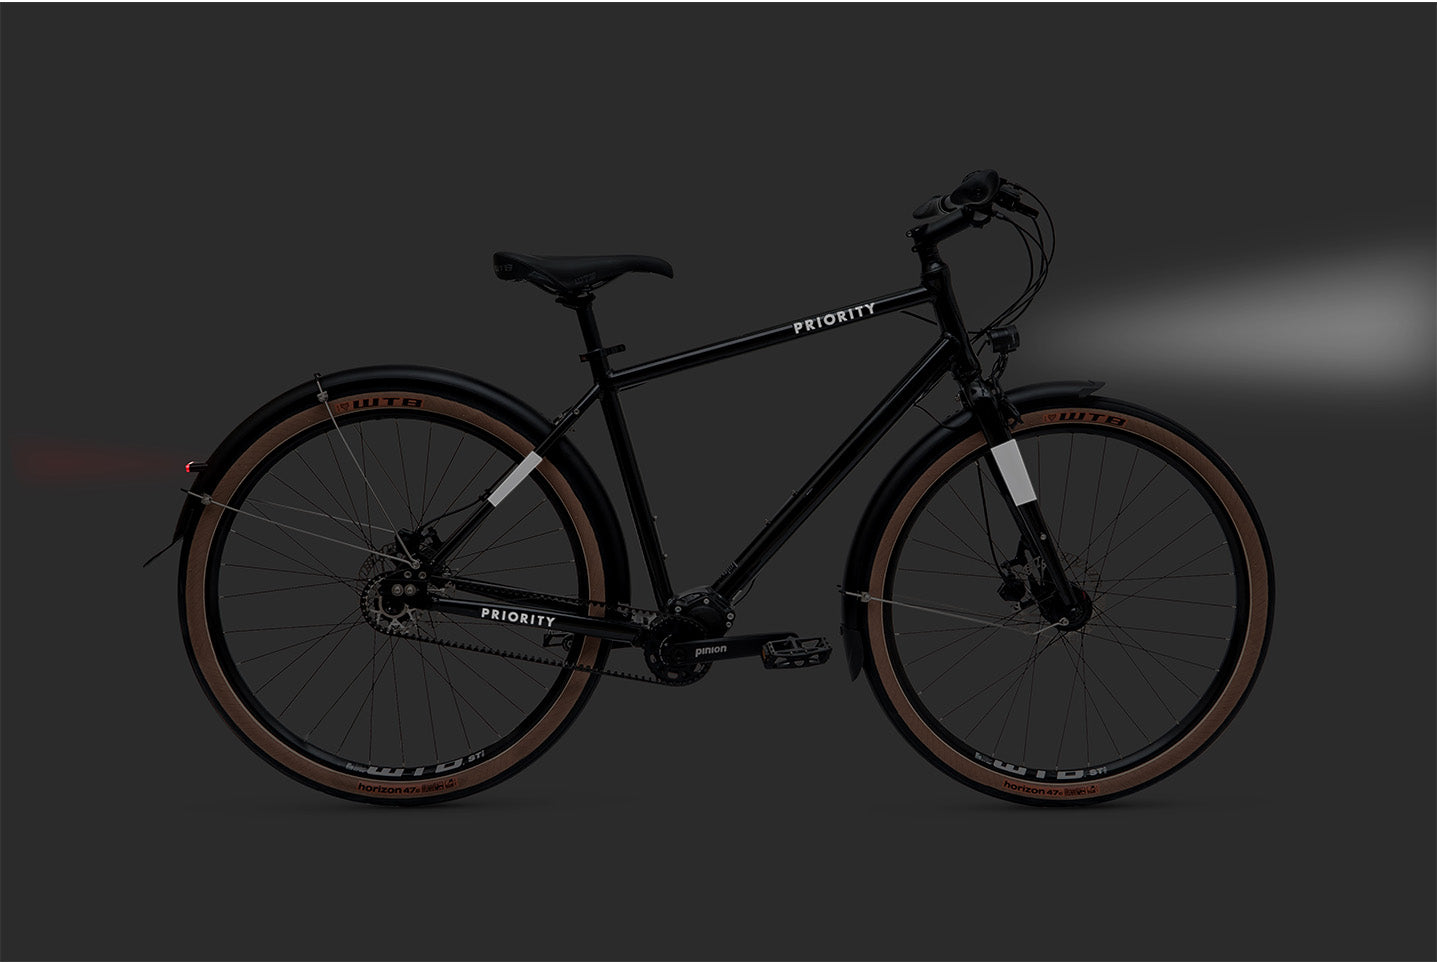 PRIORITY 600 dynamo and lights